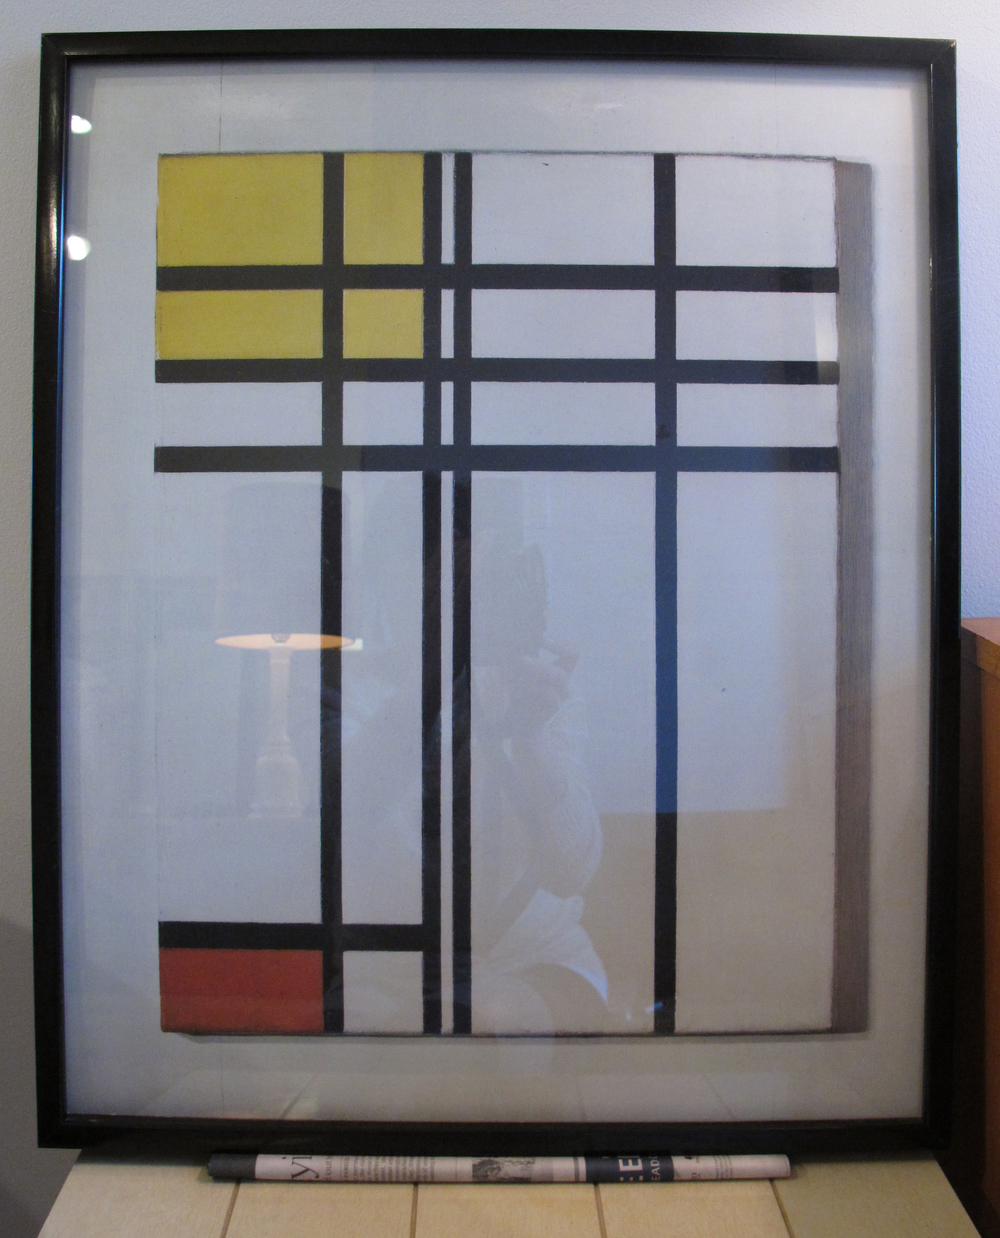 FRAMED REPRODUCTION OF 'OPPOSITION OF LINES RED & YELLOW' BY PIET MONDRIAN